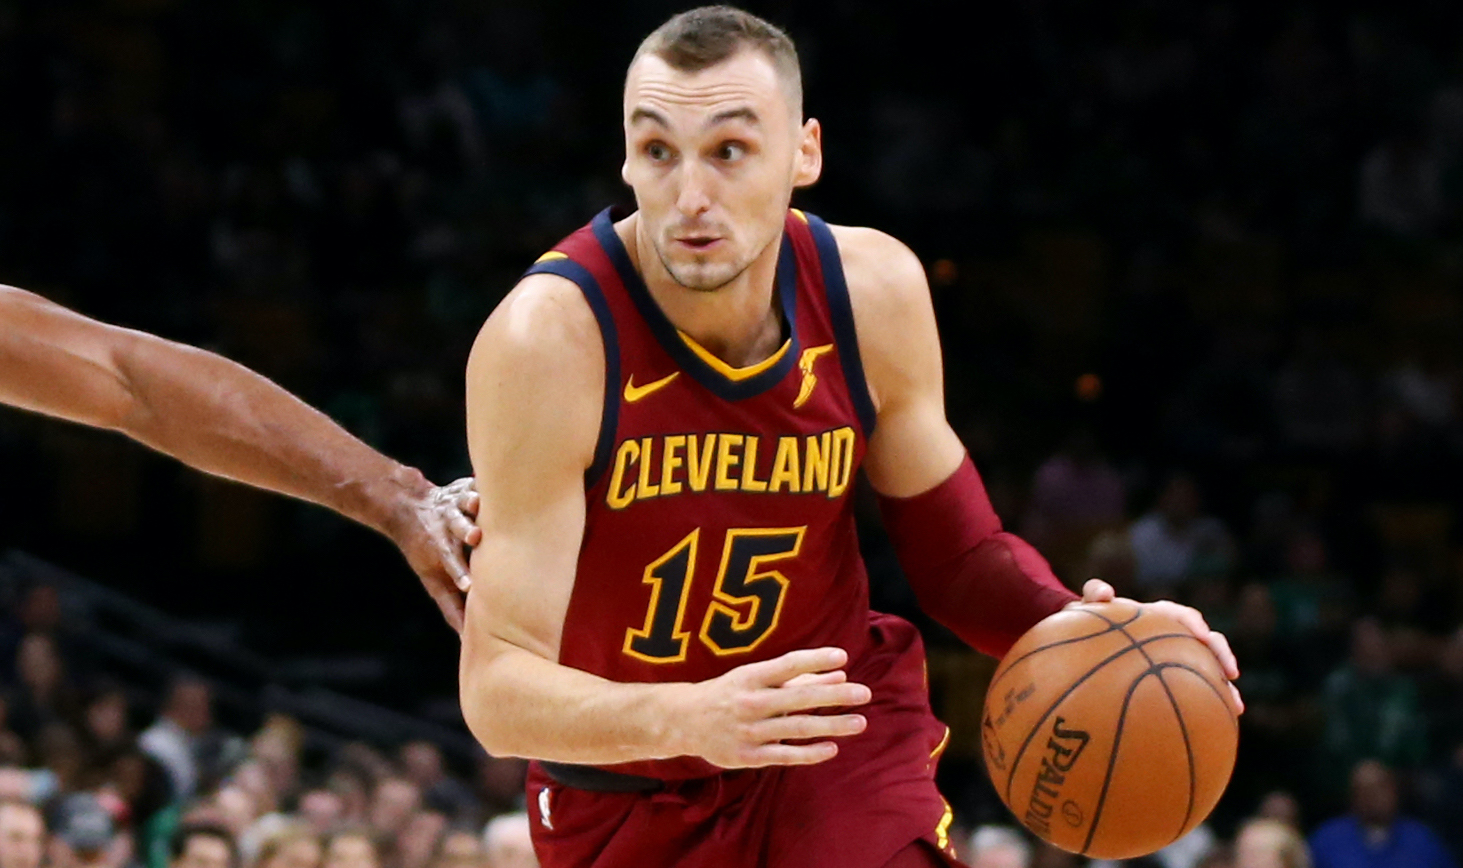 BOSTON, MA - OCTOBER 2: Sam Dekker #15 of the Cleveland Cavaliers drives against Al Horford #42 of the Boston Celtics during their preseason game at TD Garden on October 2, 2018 in Boston, Massachusetts. (Photo by Maddie Meyer/Getty Images)